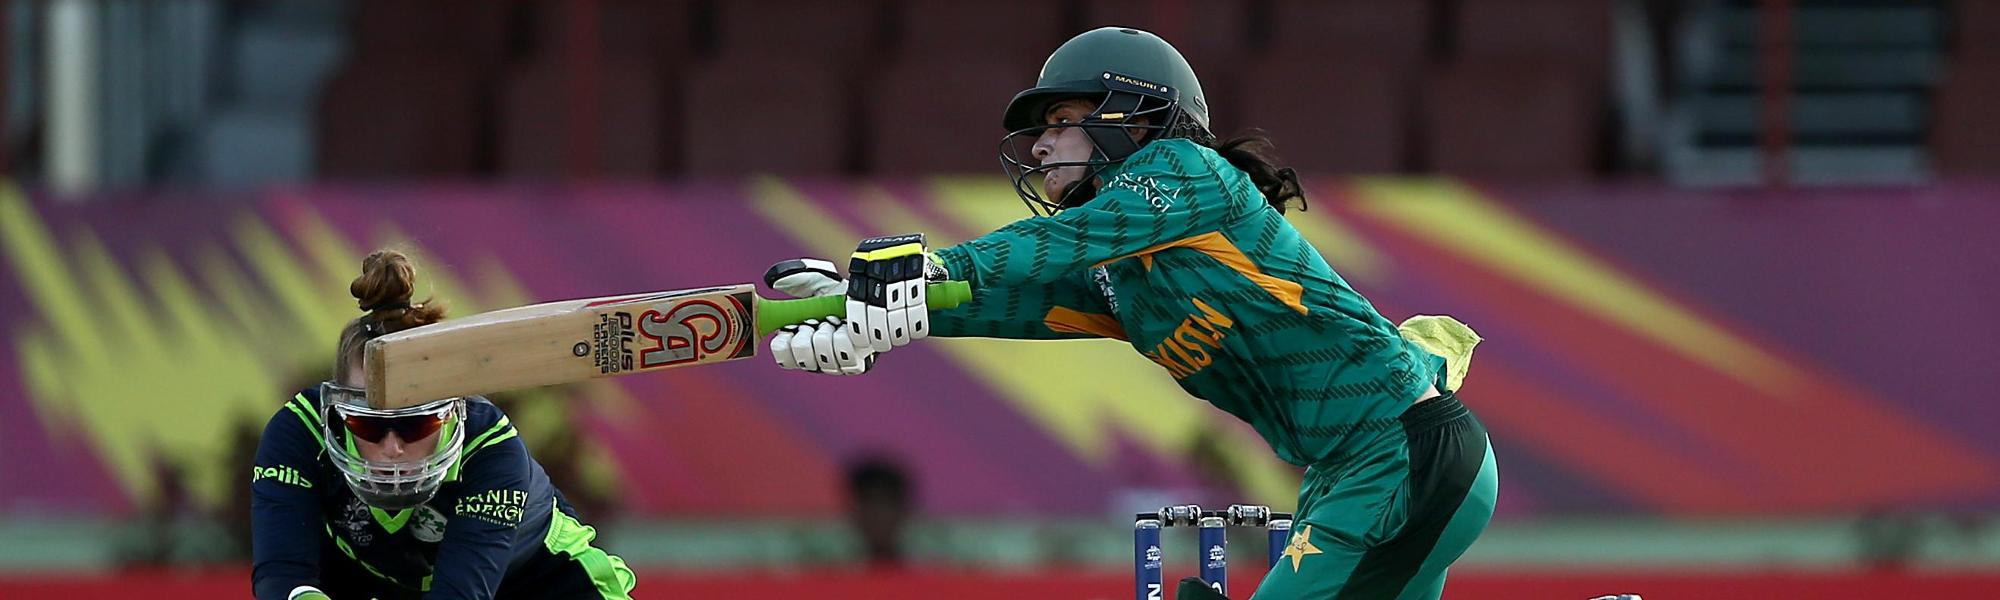 Javeria Khan of Pakistan bats with Mary Waldron, wicket keeper of Ireland looking on during the ICC Women's World T20 2018 match between Pakistan and Ireland at Guyana National Stadium on November 13, 2018 in Providence, Guyana.